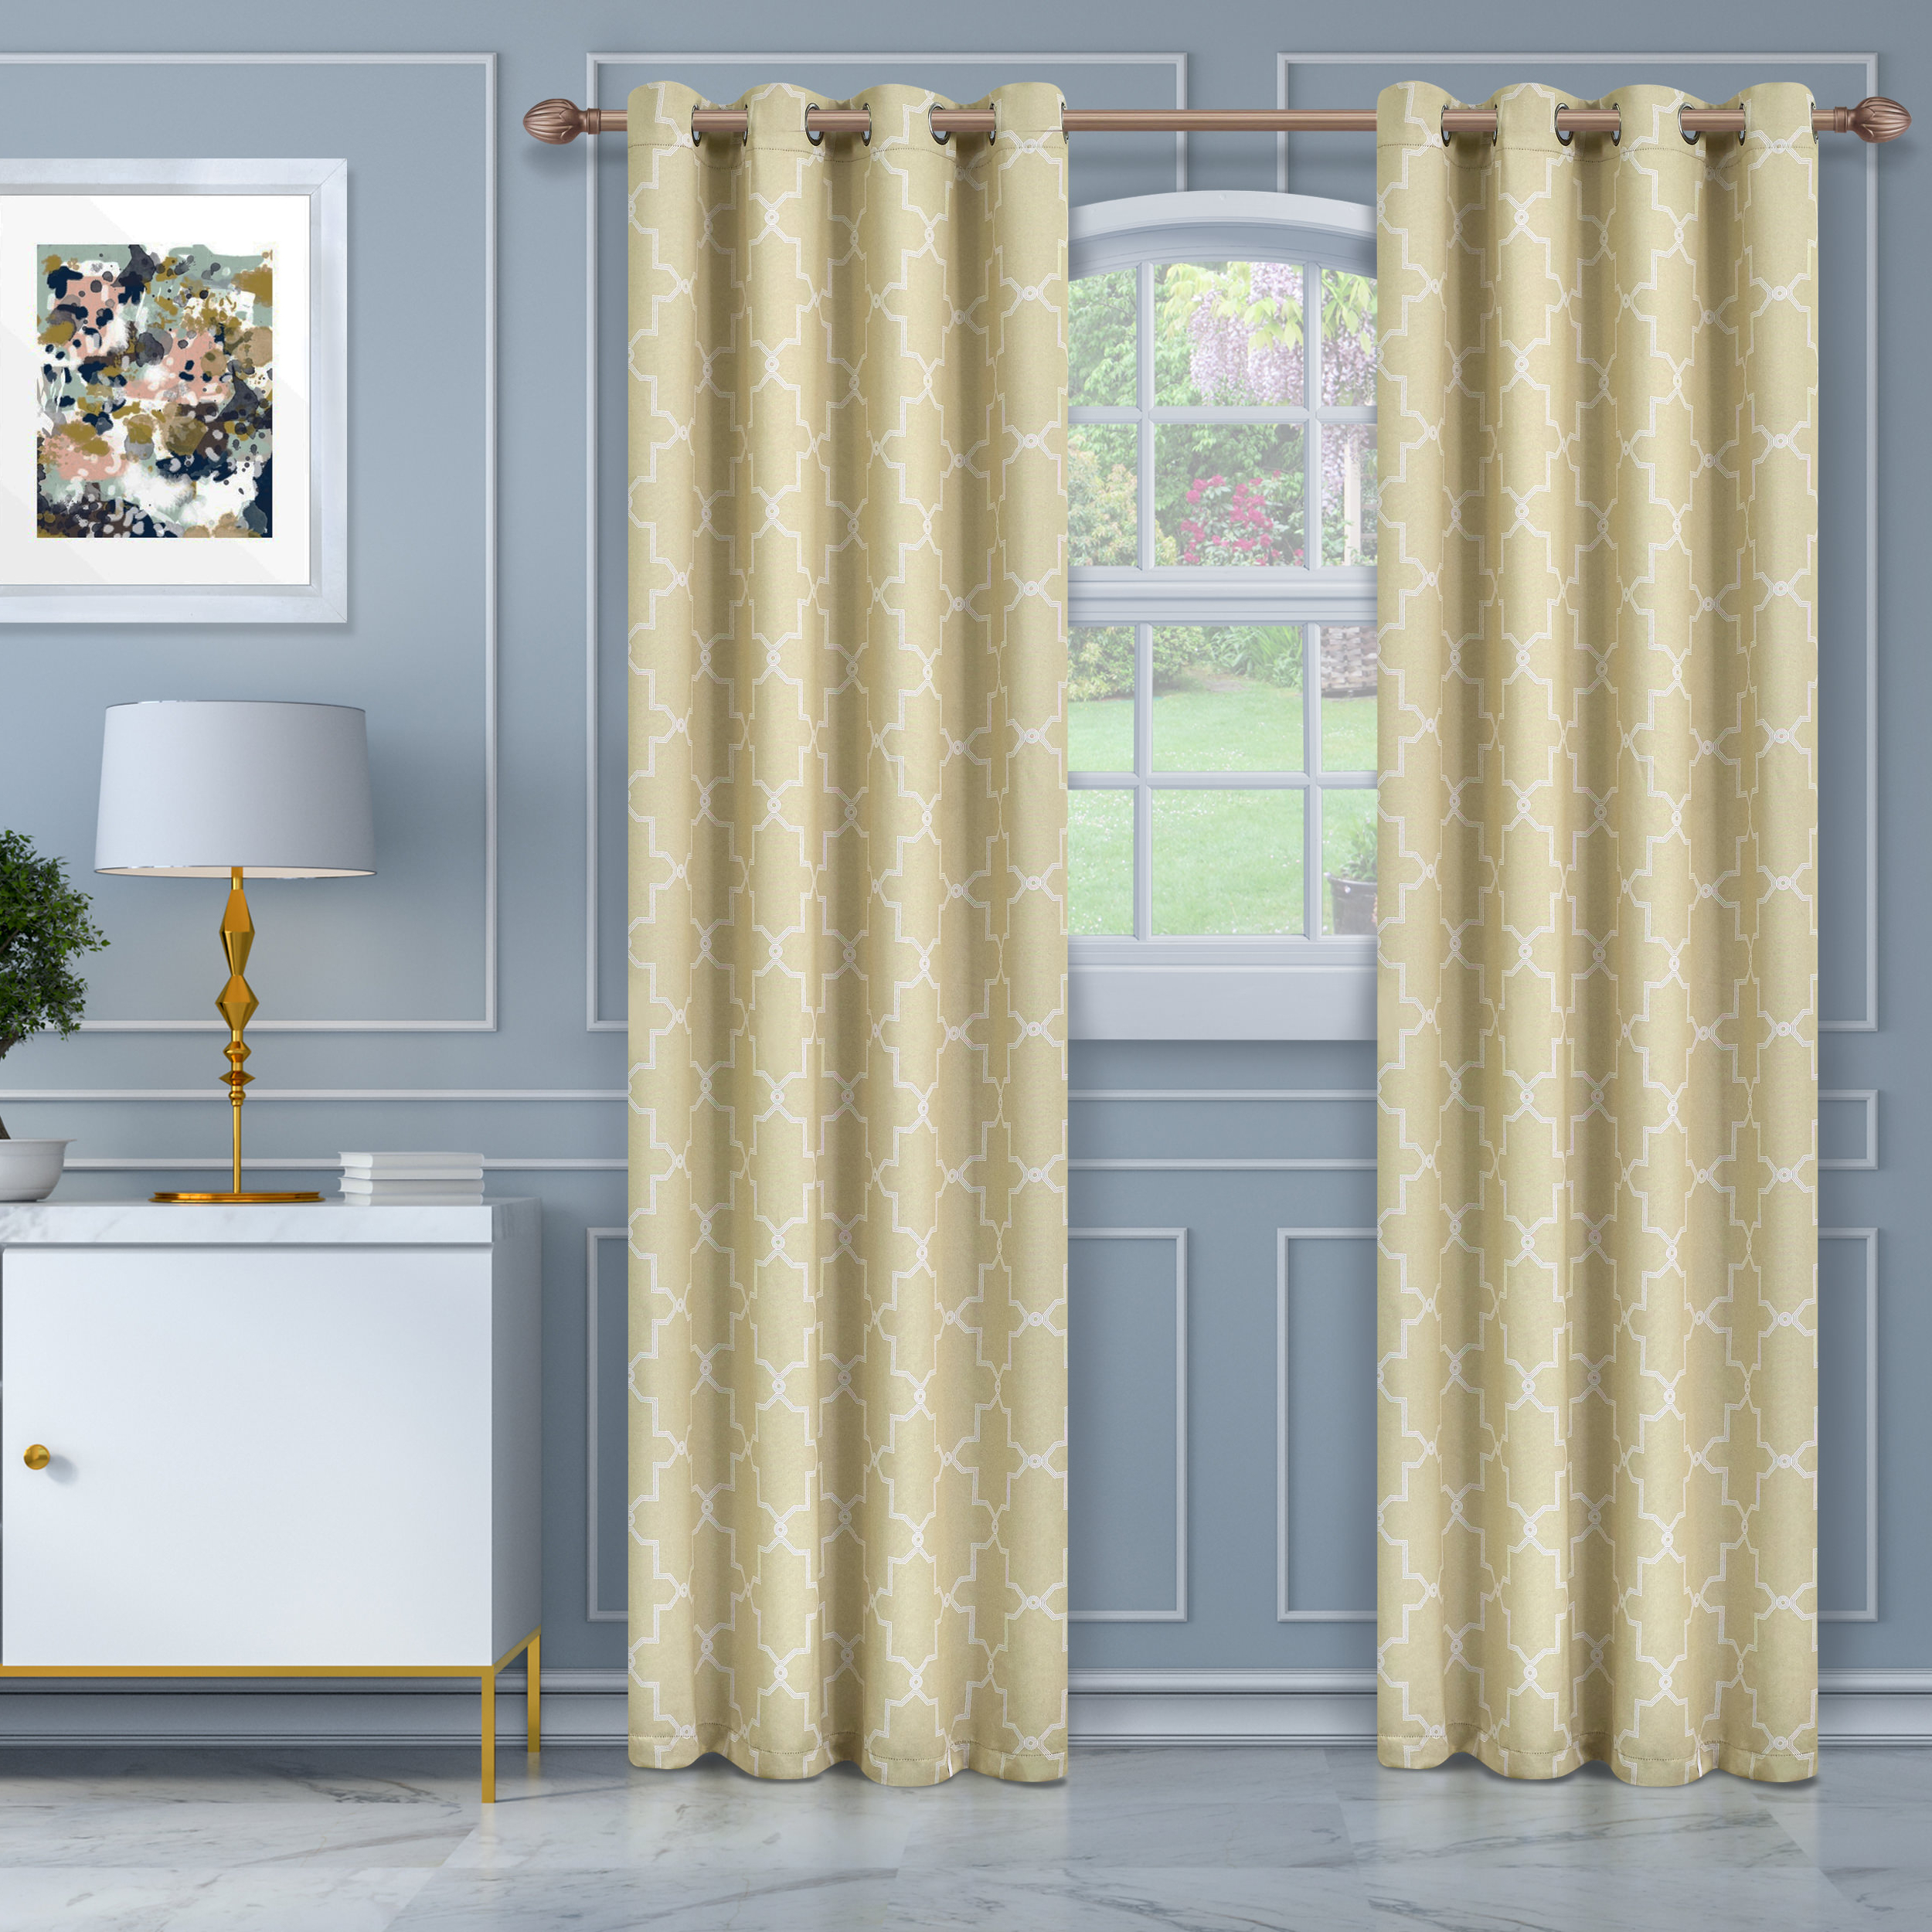 Famous Superior Solid Insulated Thermal Blackout Grommet Curtain Panel Pairs With Regard To Superior Soft Quality Woven, Imperial Trellis Blackout Thermal Grommet  Curtain Panel Pair (Gallery 19 of 20)